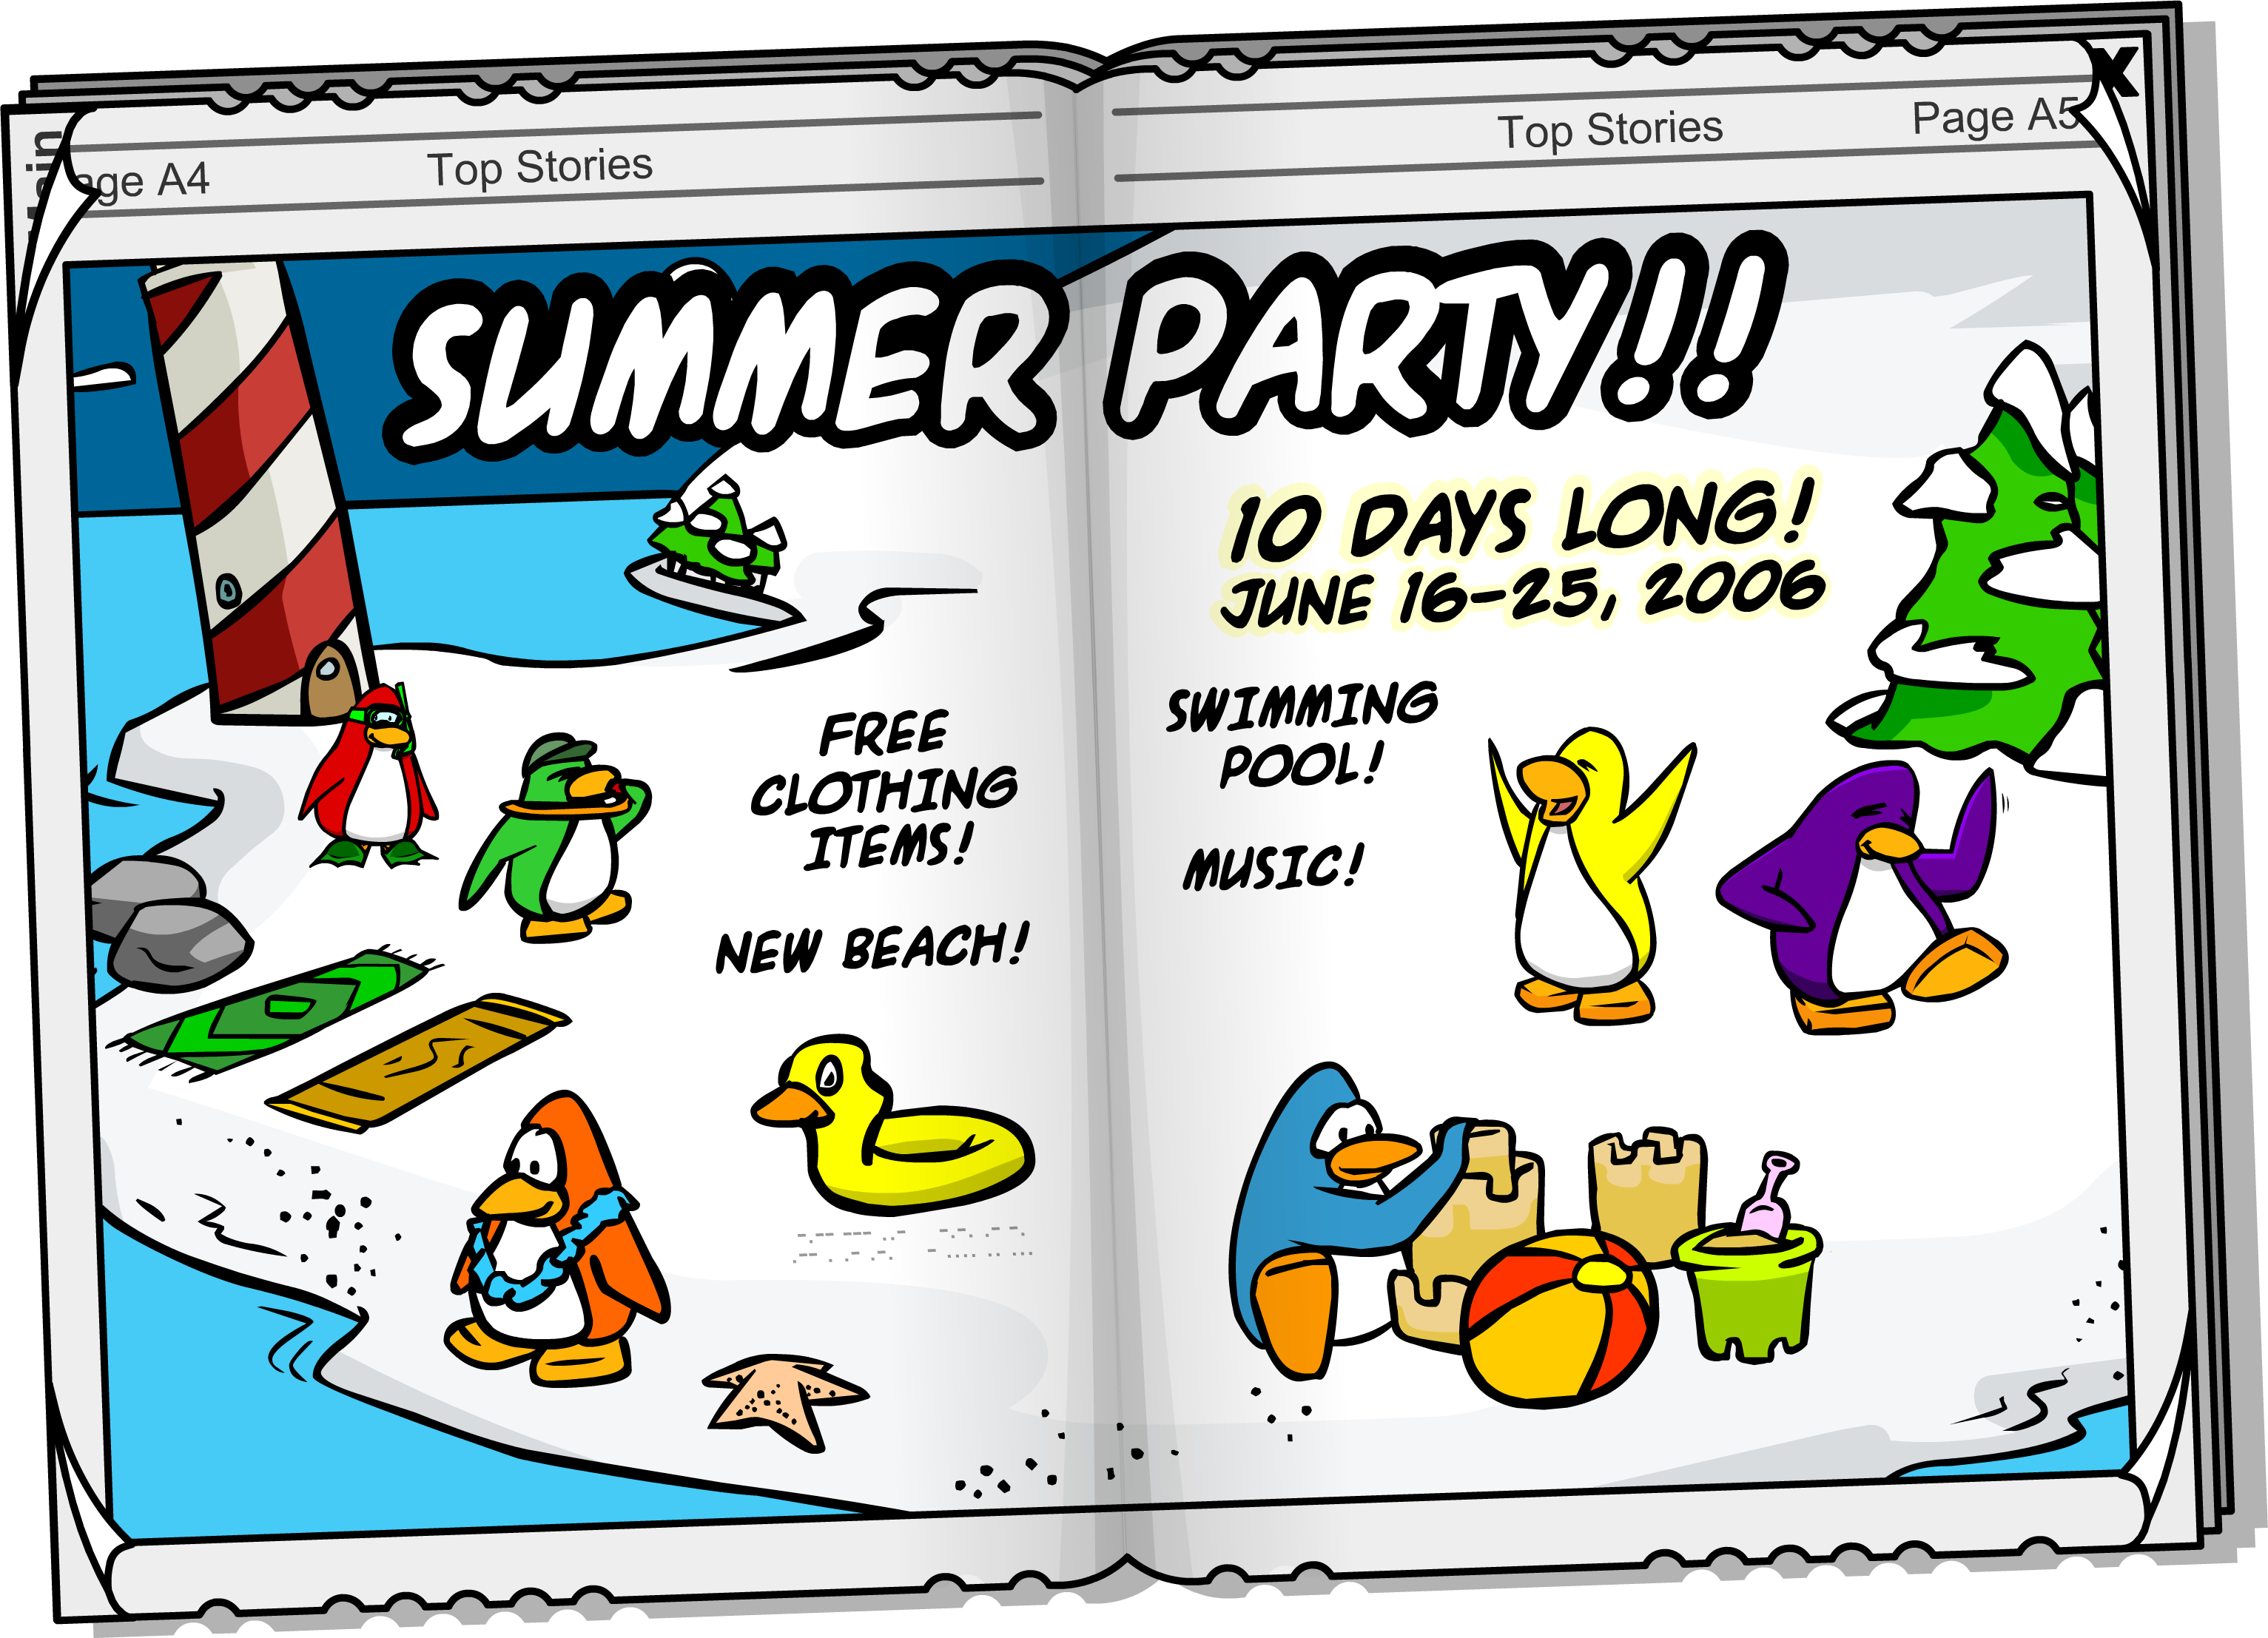 File:SummerParty06OldNewsAd.png